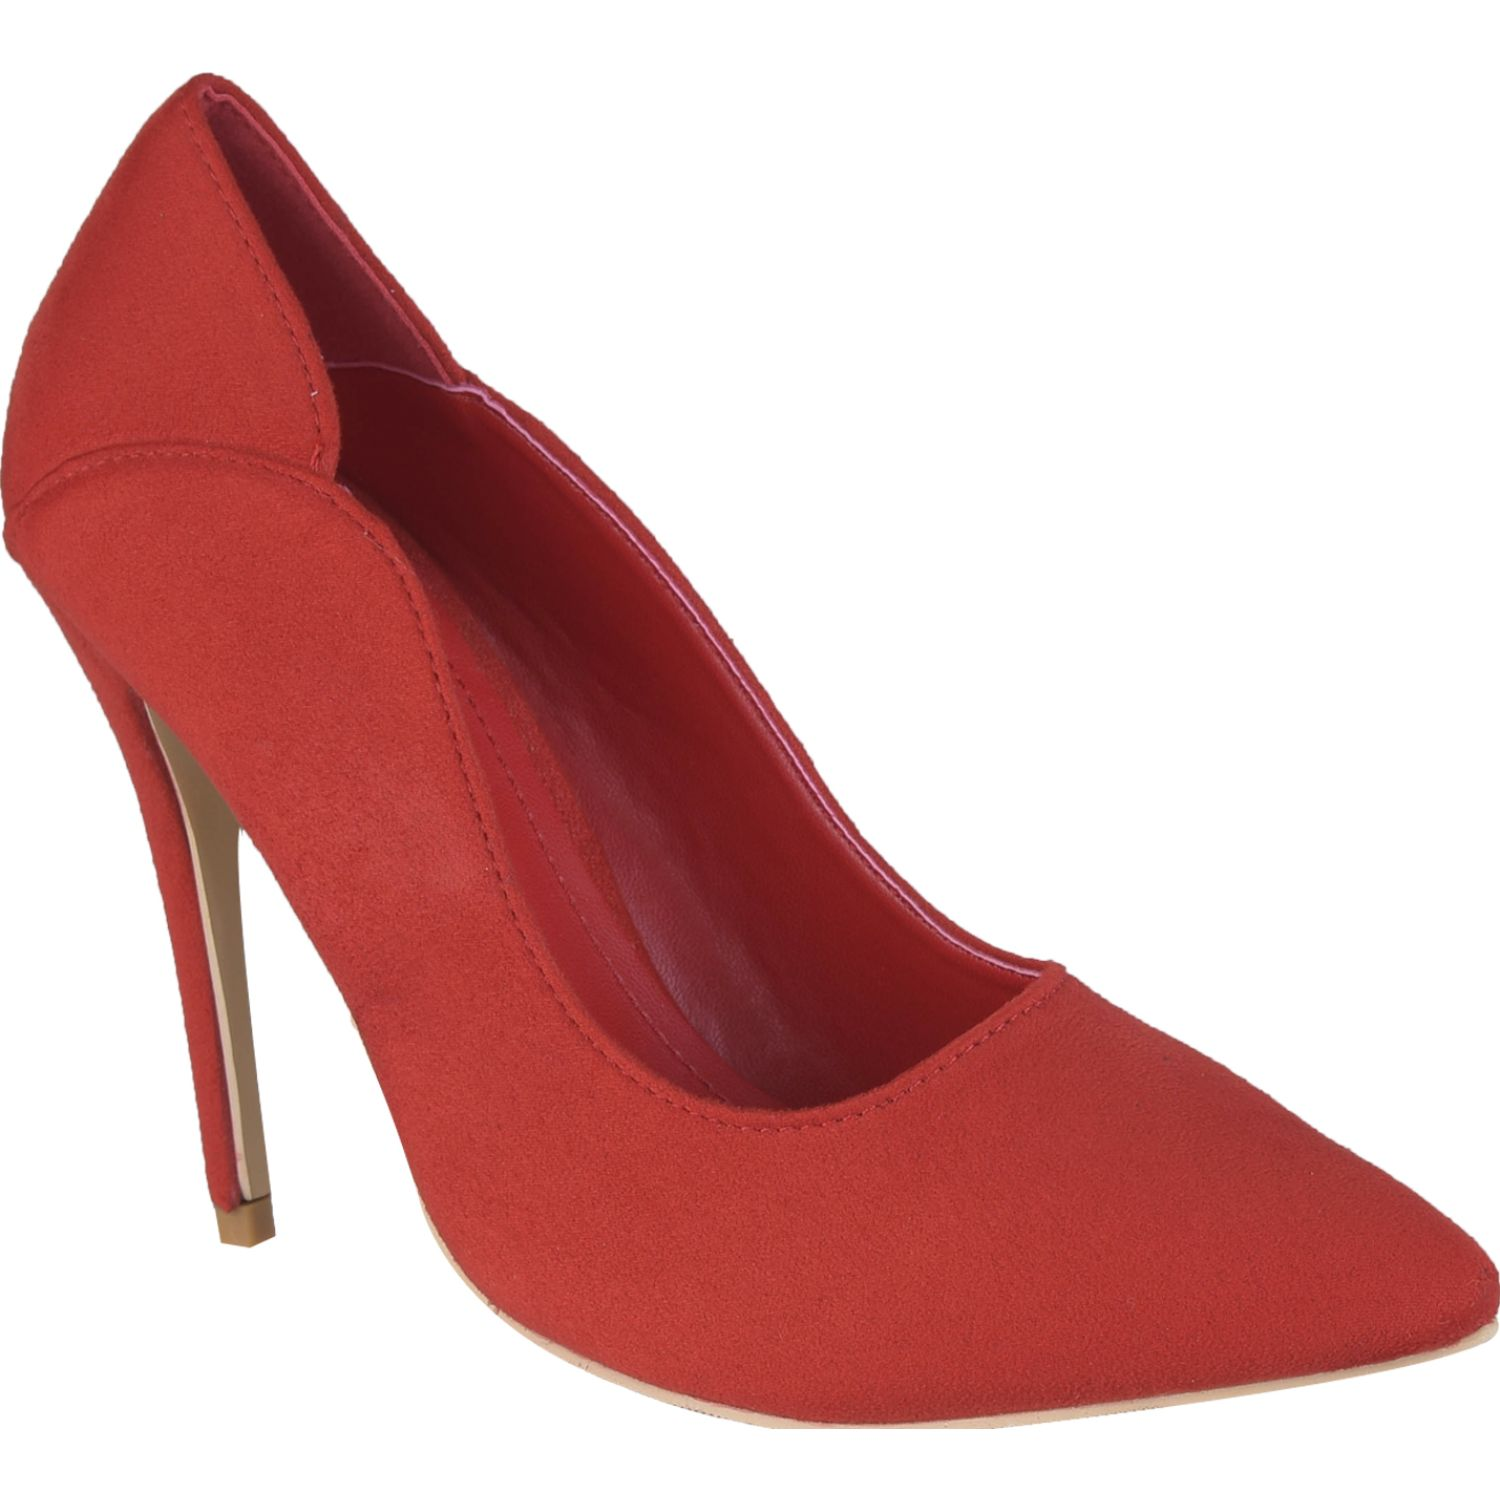 Platanitos cv 0081 Rojo Estiletos y Pumps